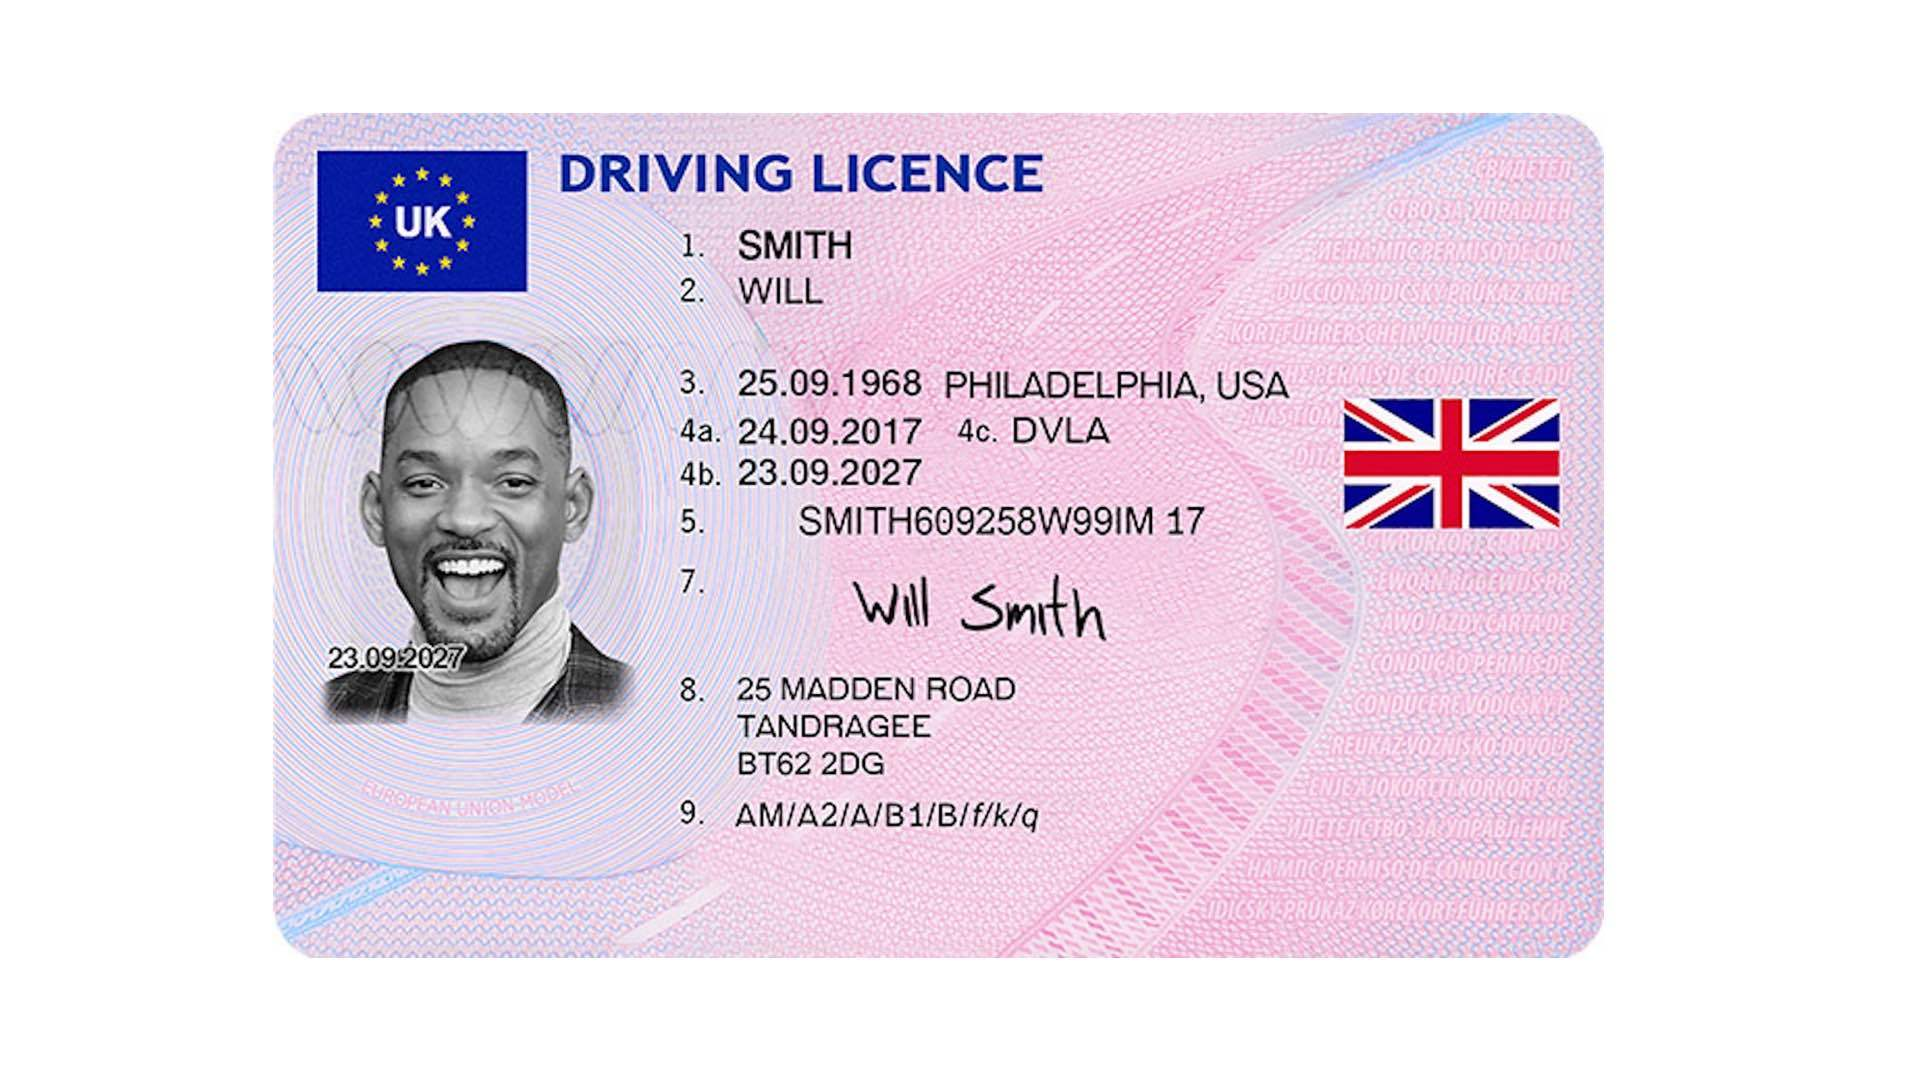 driving lessons, How many driving lessons, BJM School of Motoring, BJM School of Motoring